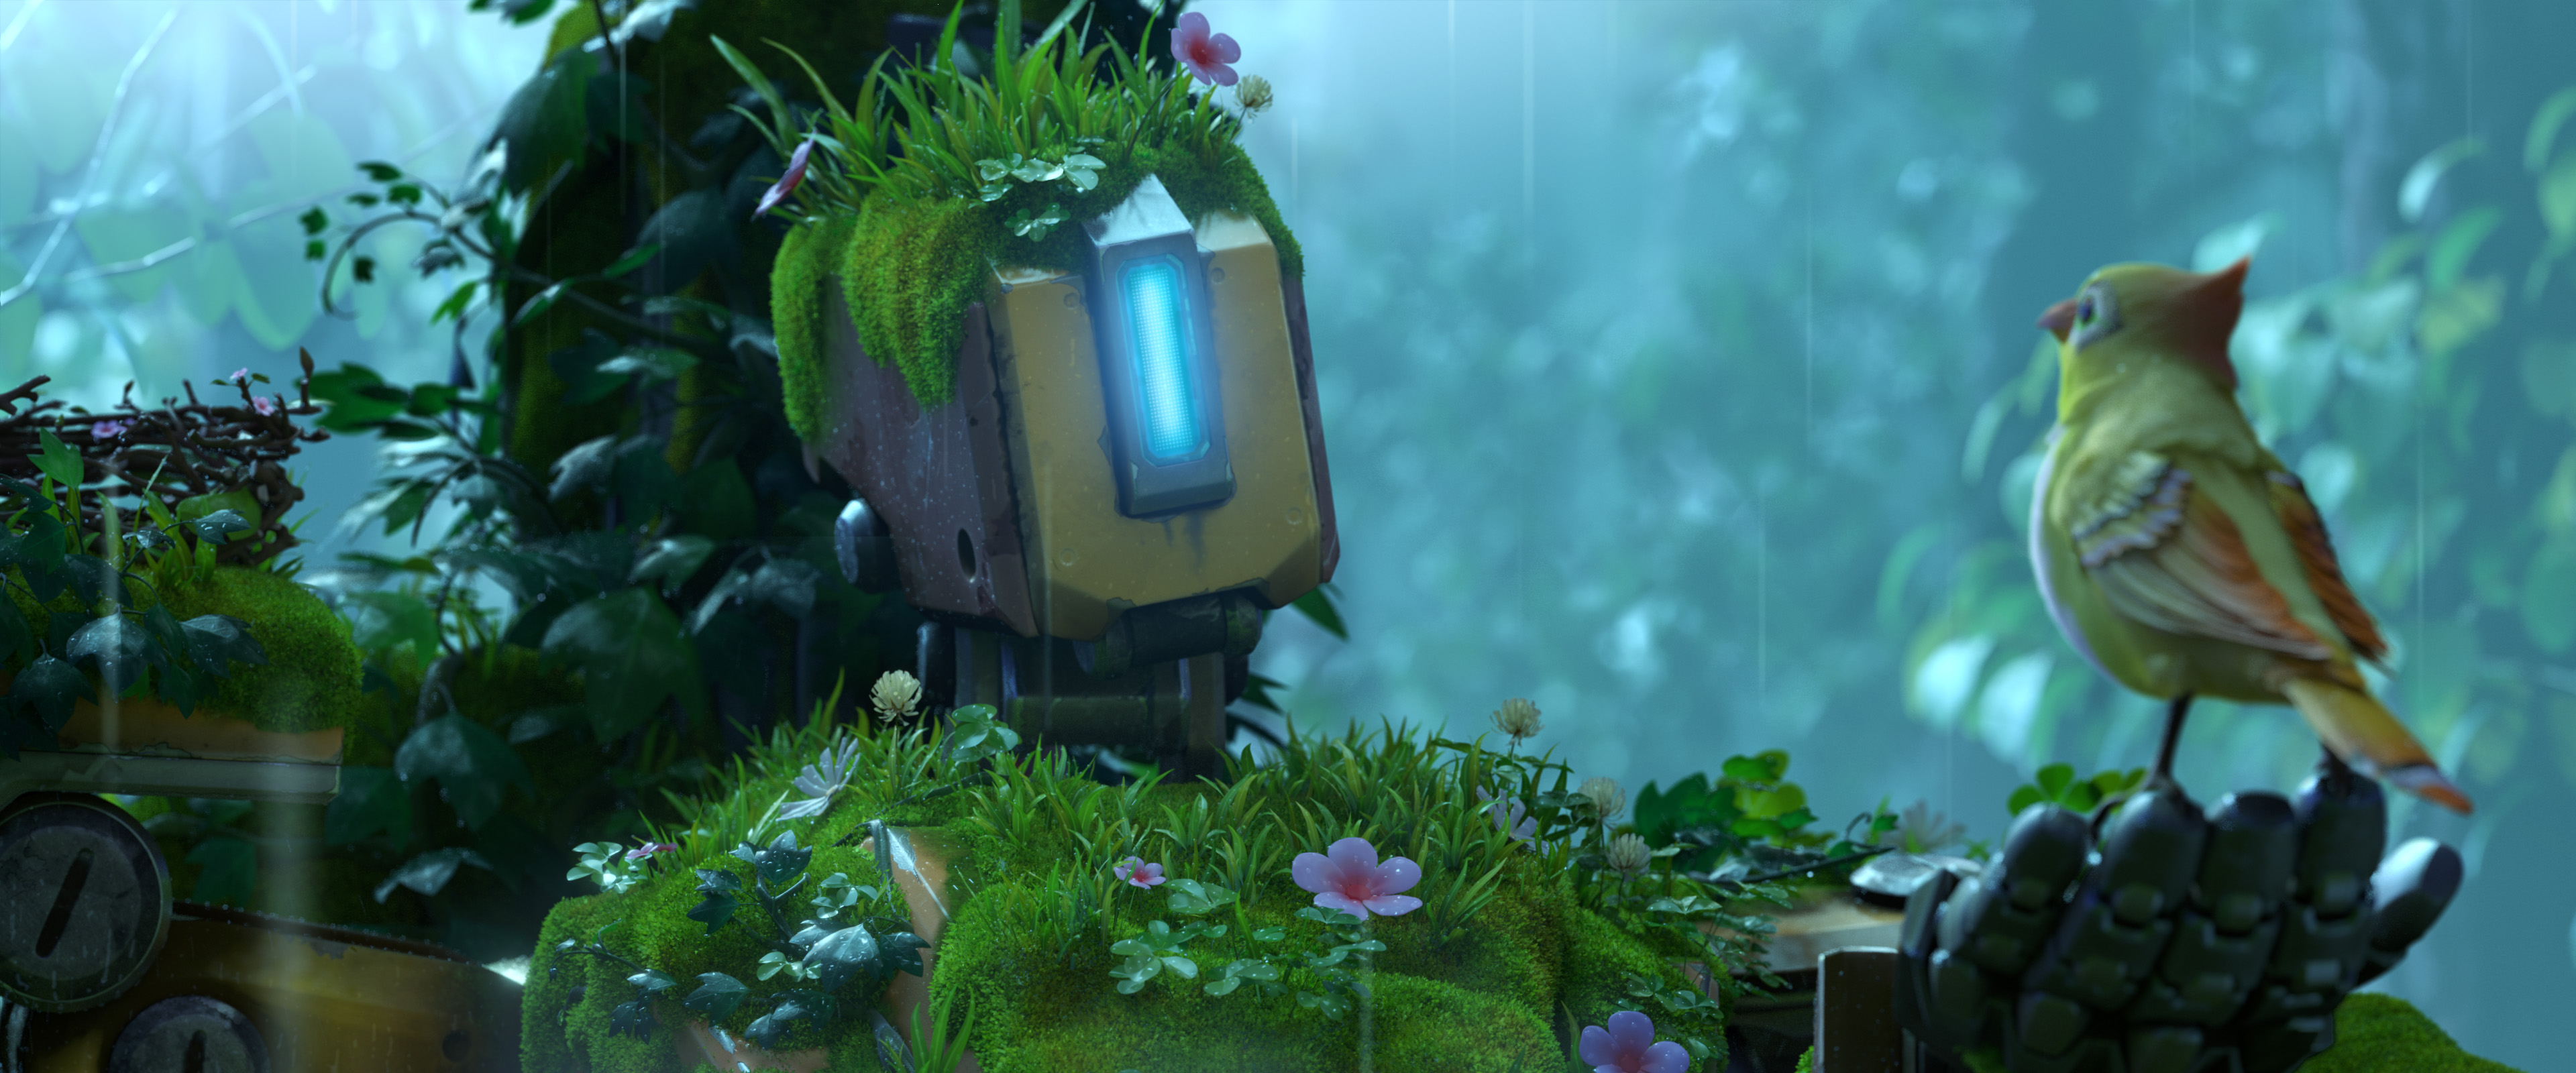 Overwatch bastion hd wallpaper background image 3840x1600 id 737722 wallpaper abyss - Bastion wallpaper ...